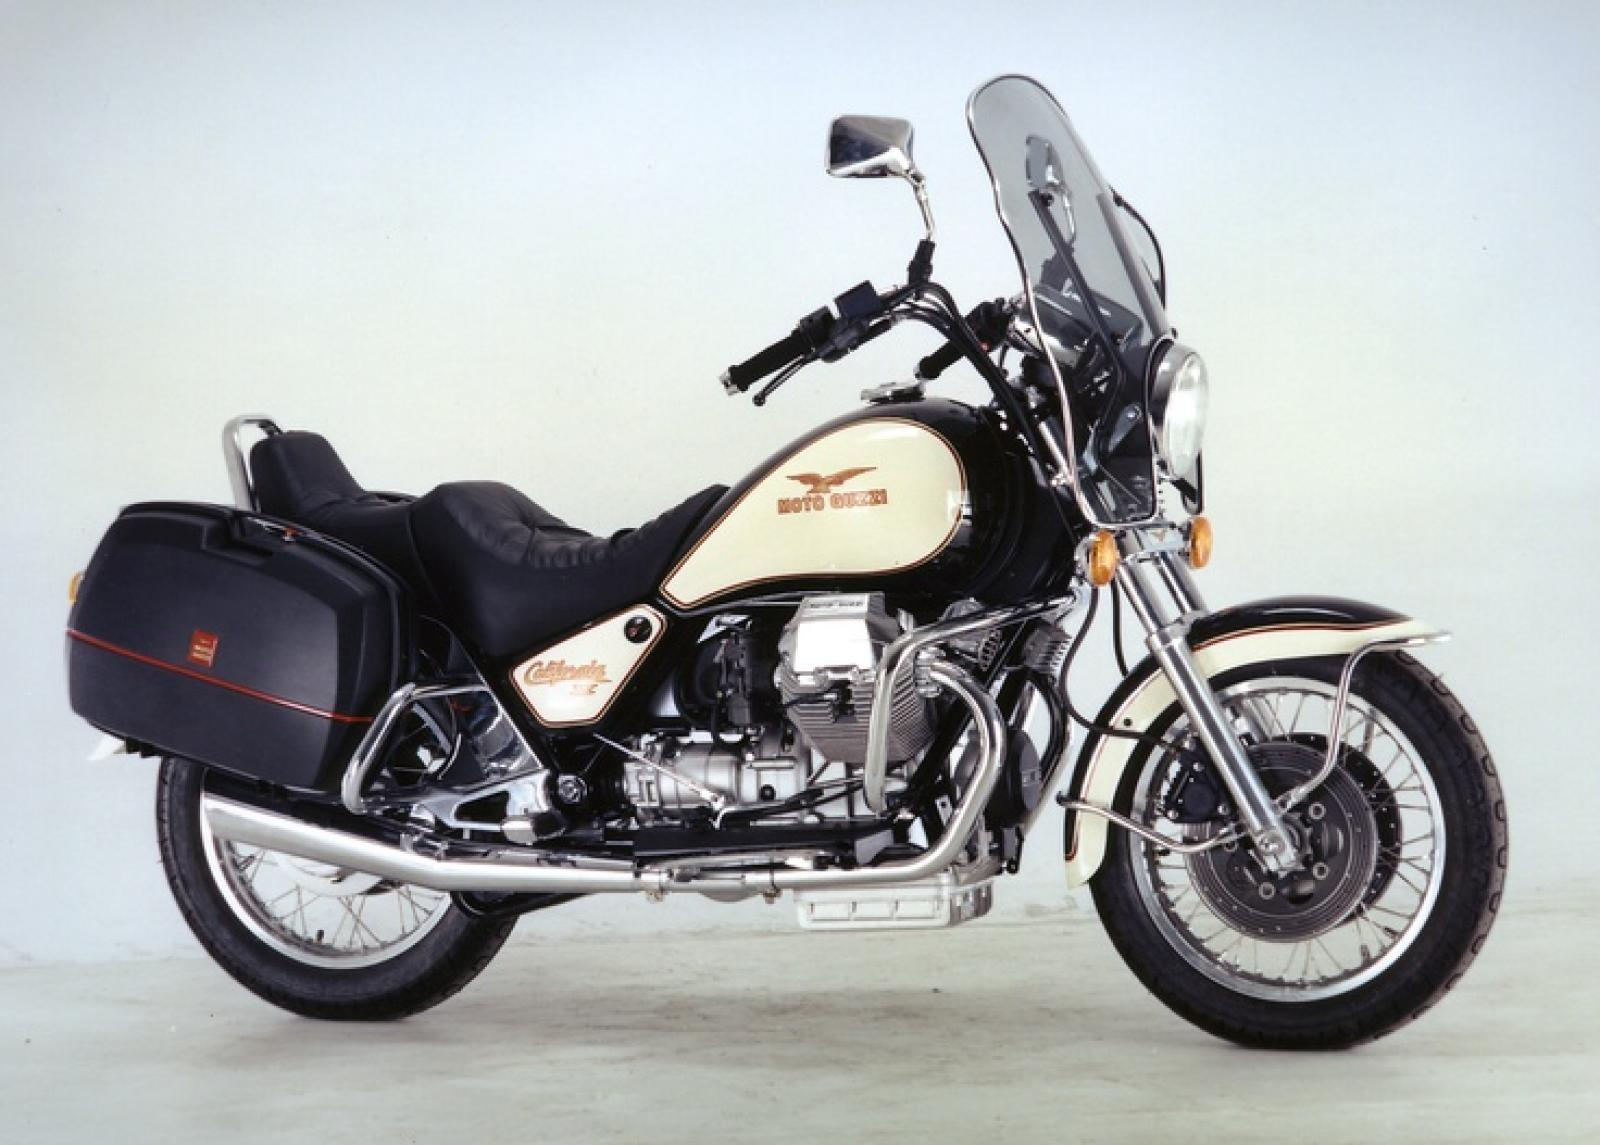 Moto Guzzi California III 1993 images #108666